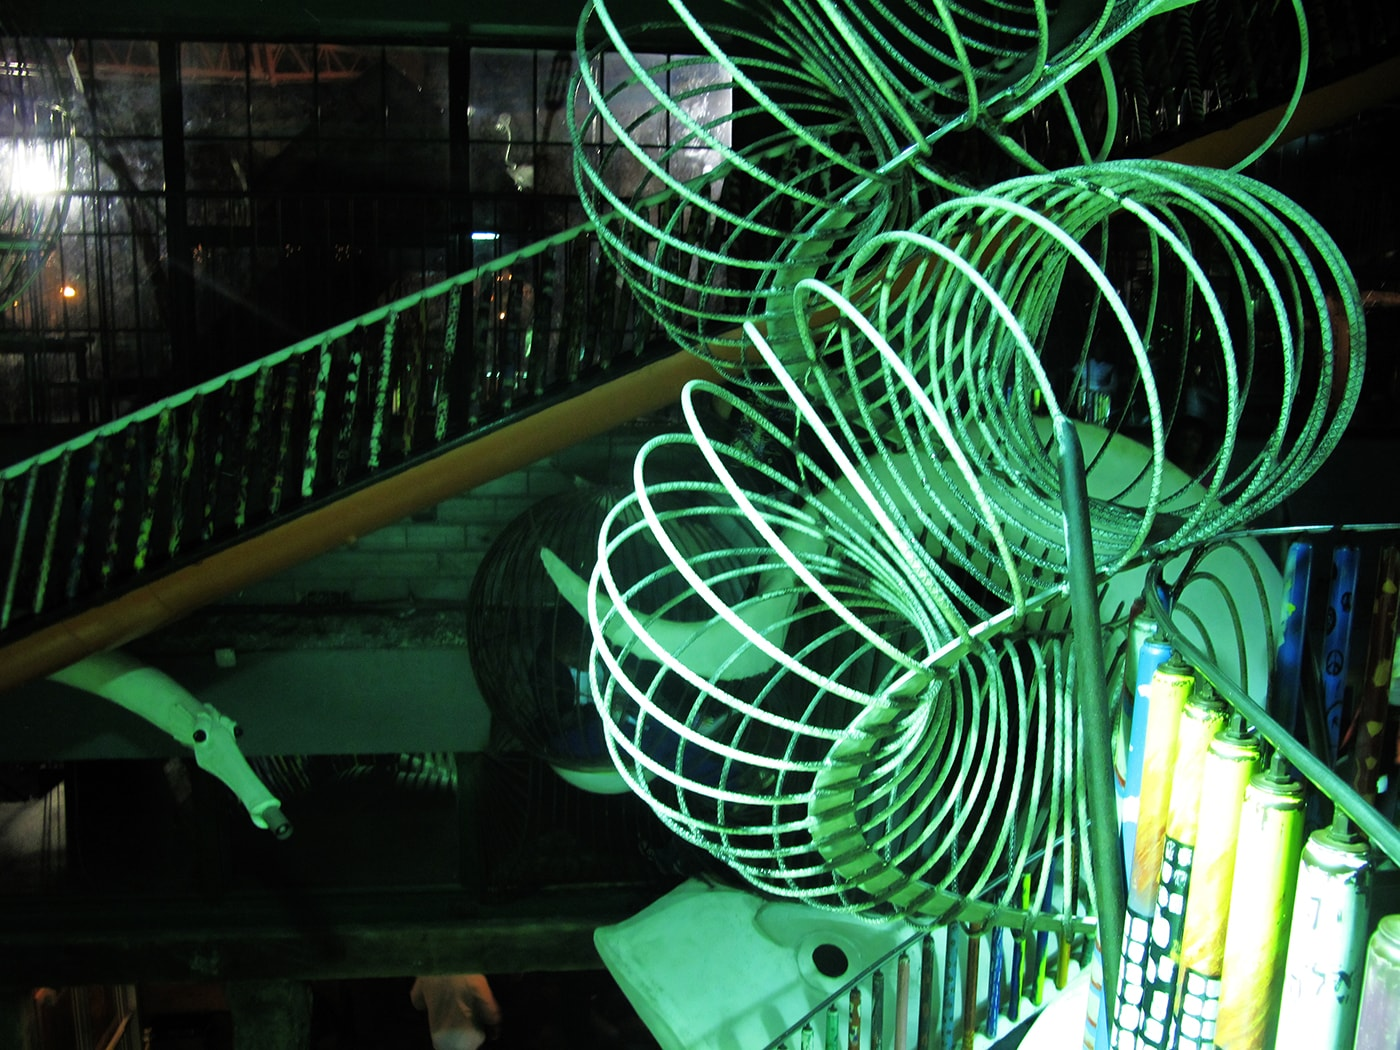 The City Museum in St. Louis, Missouri.